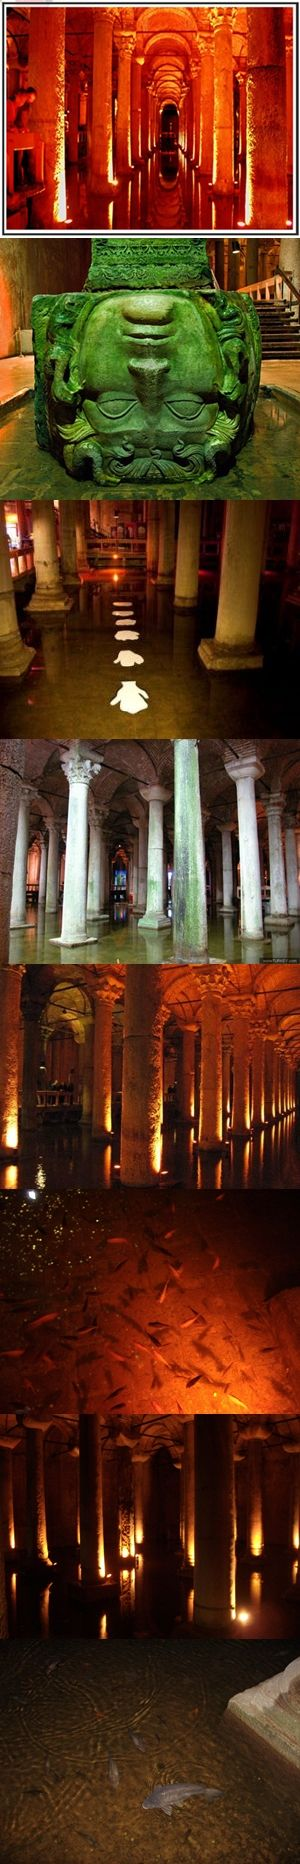 Basilica Cistern(yerebatan sarnıcı):  not much to it, but pretty cool to see and worth the 10lira.